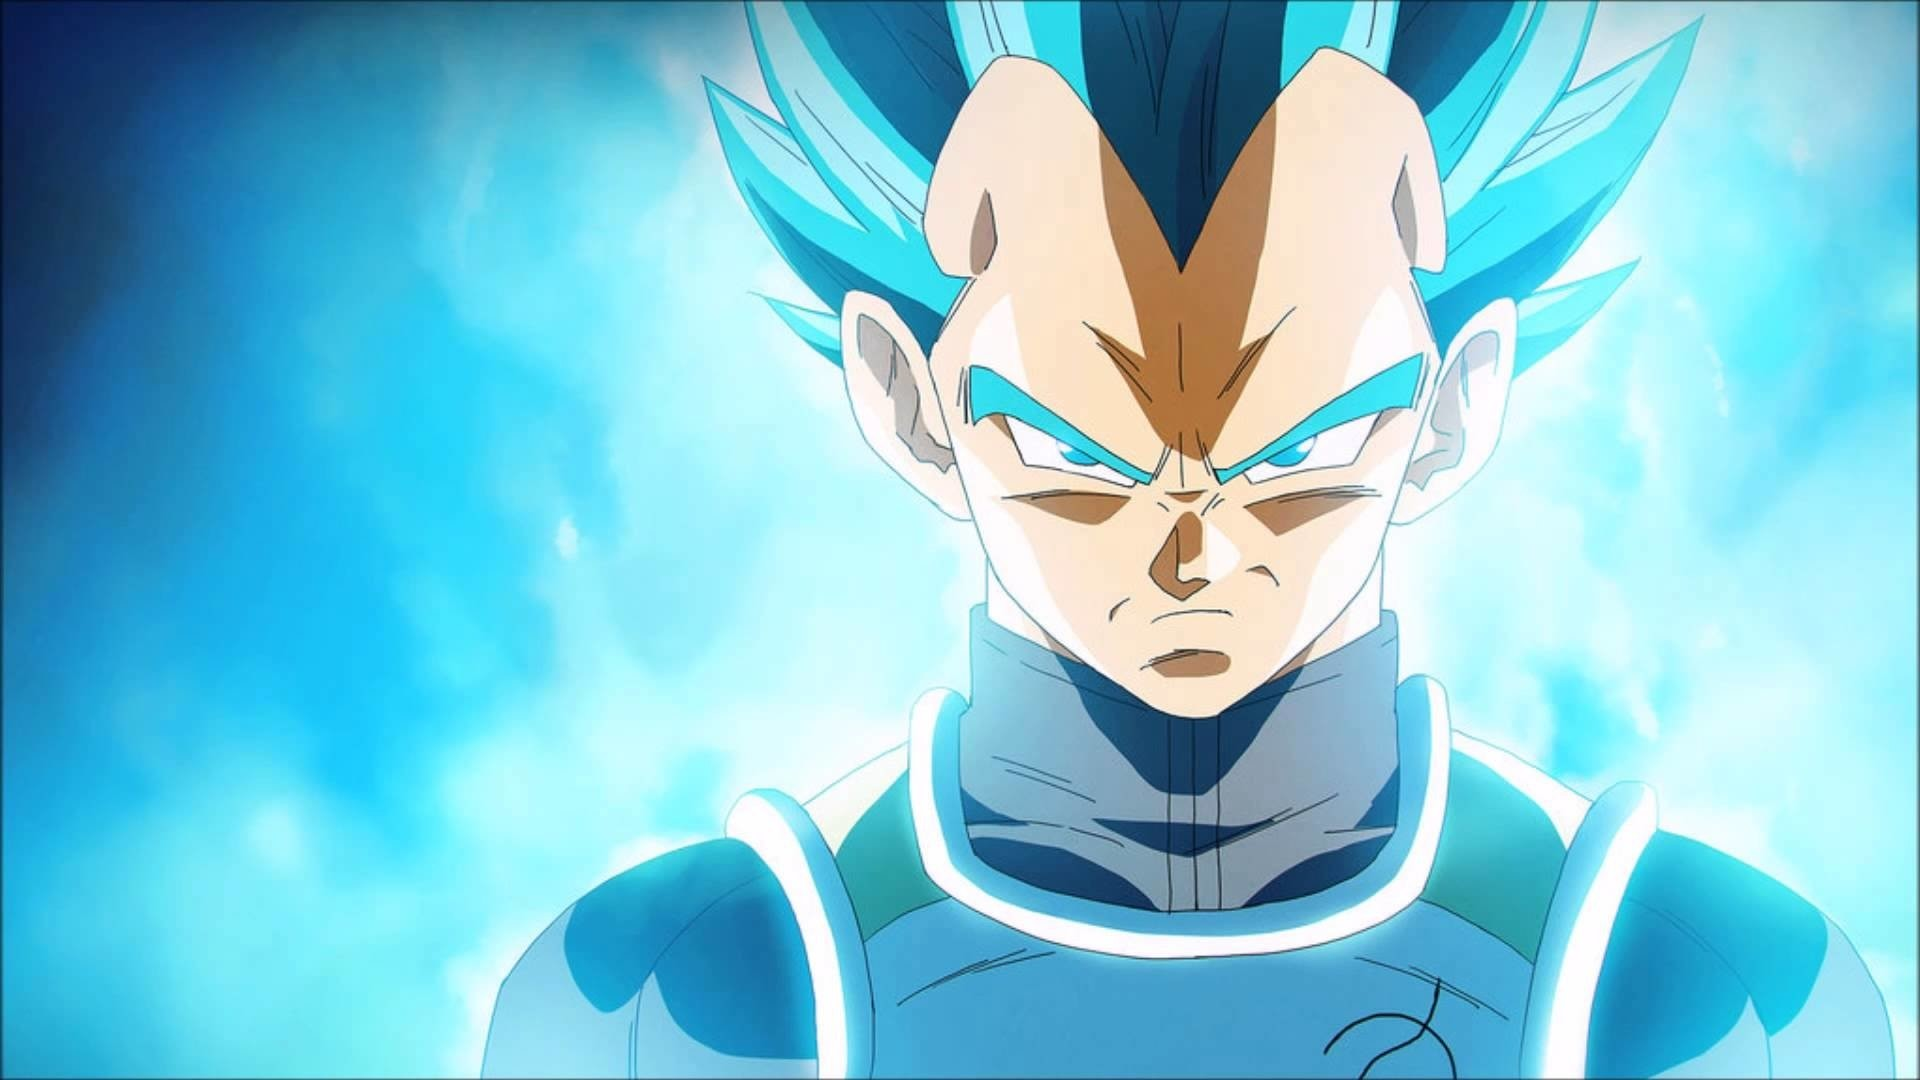 vegeta hd wallpapers (69+ images)